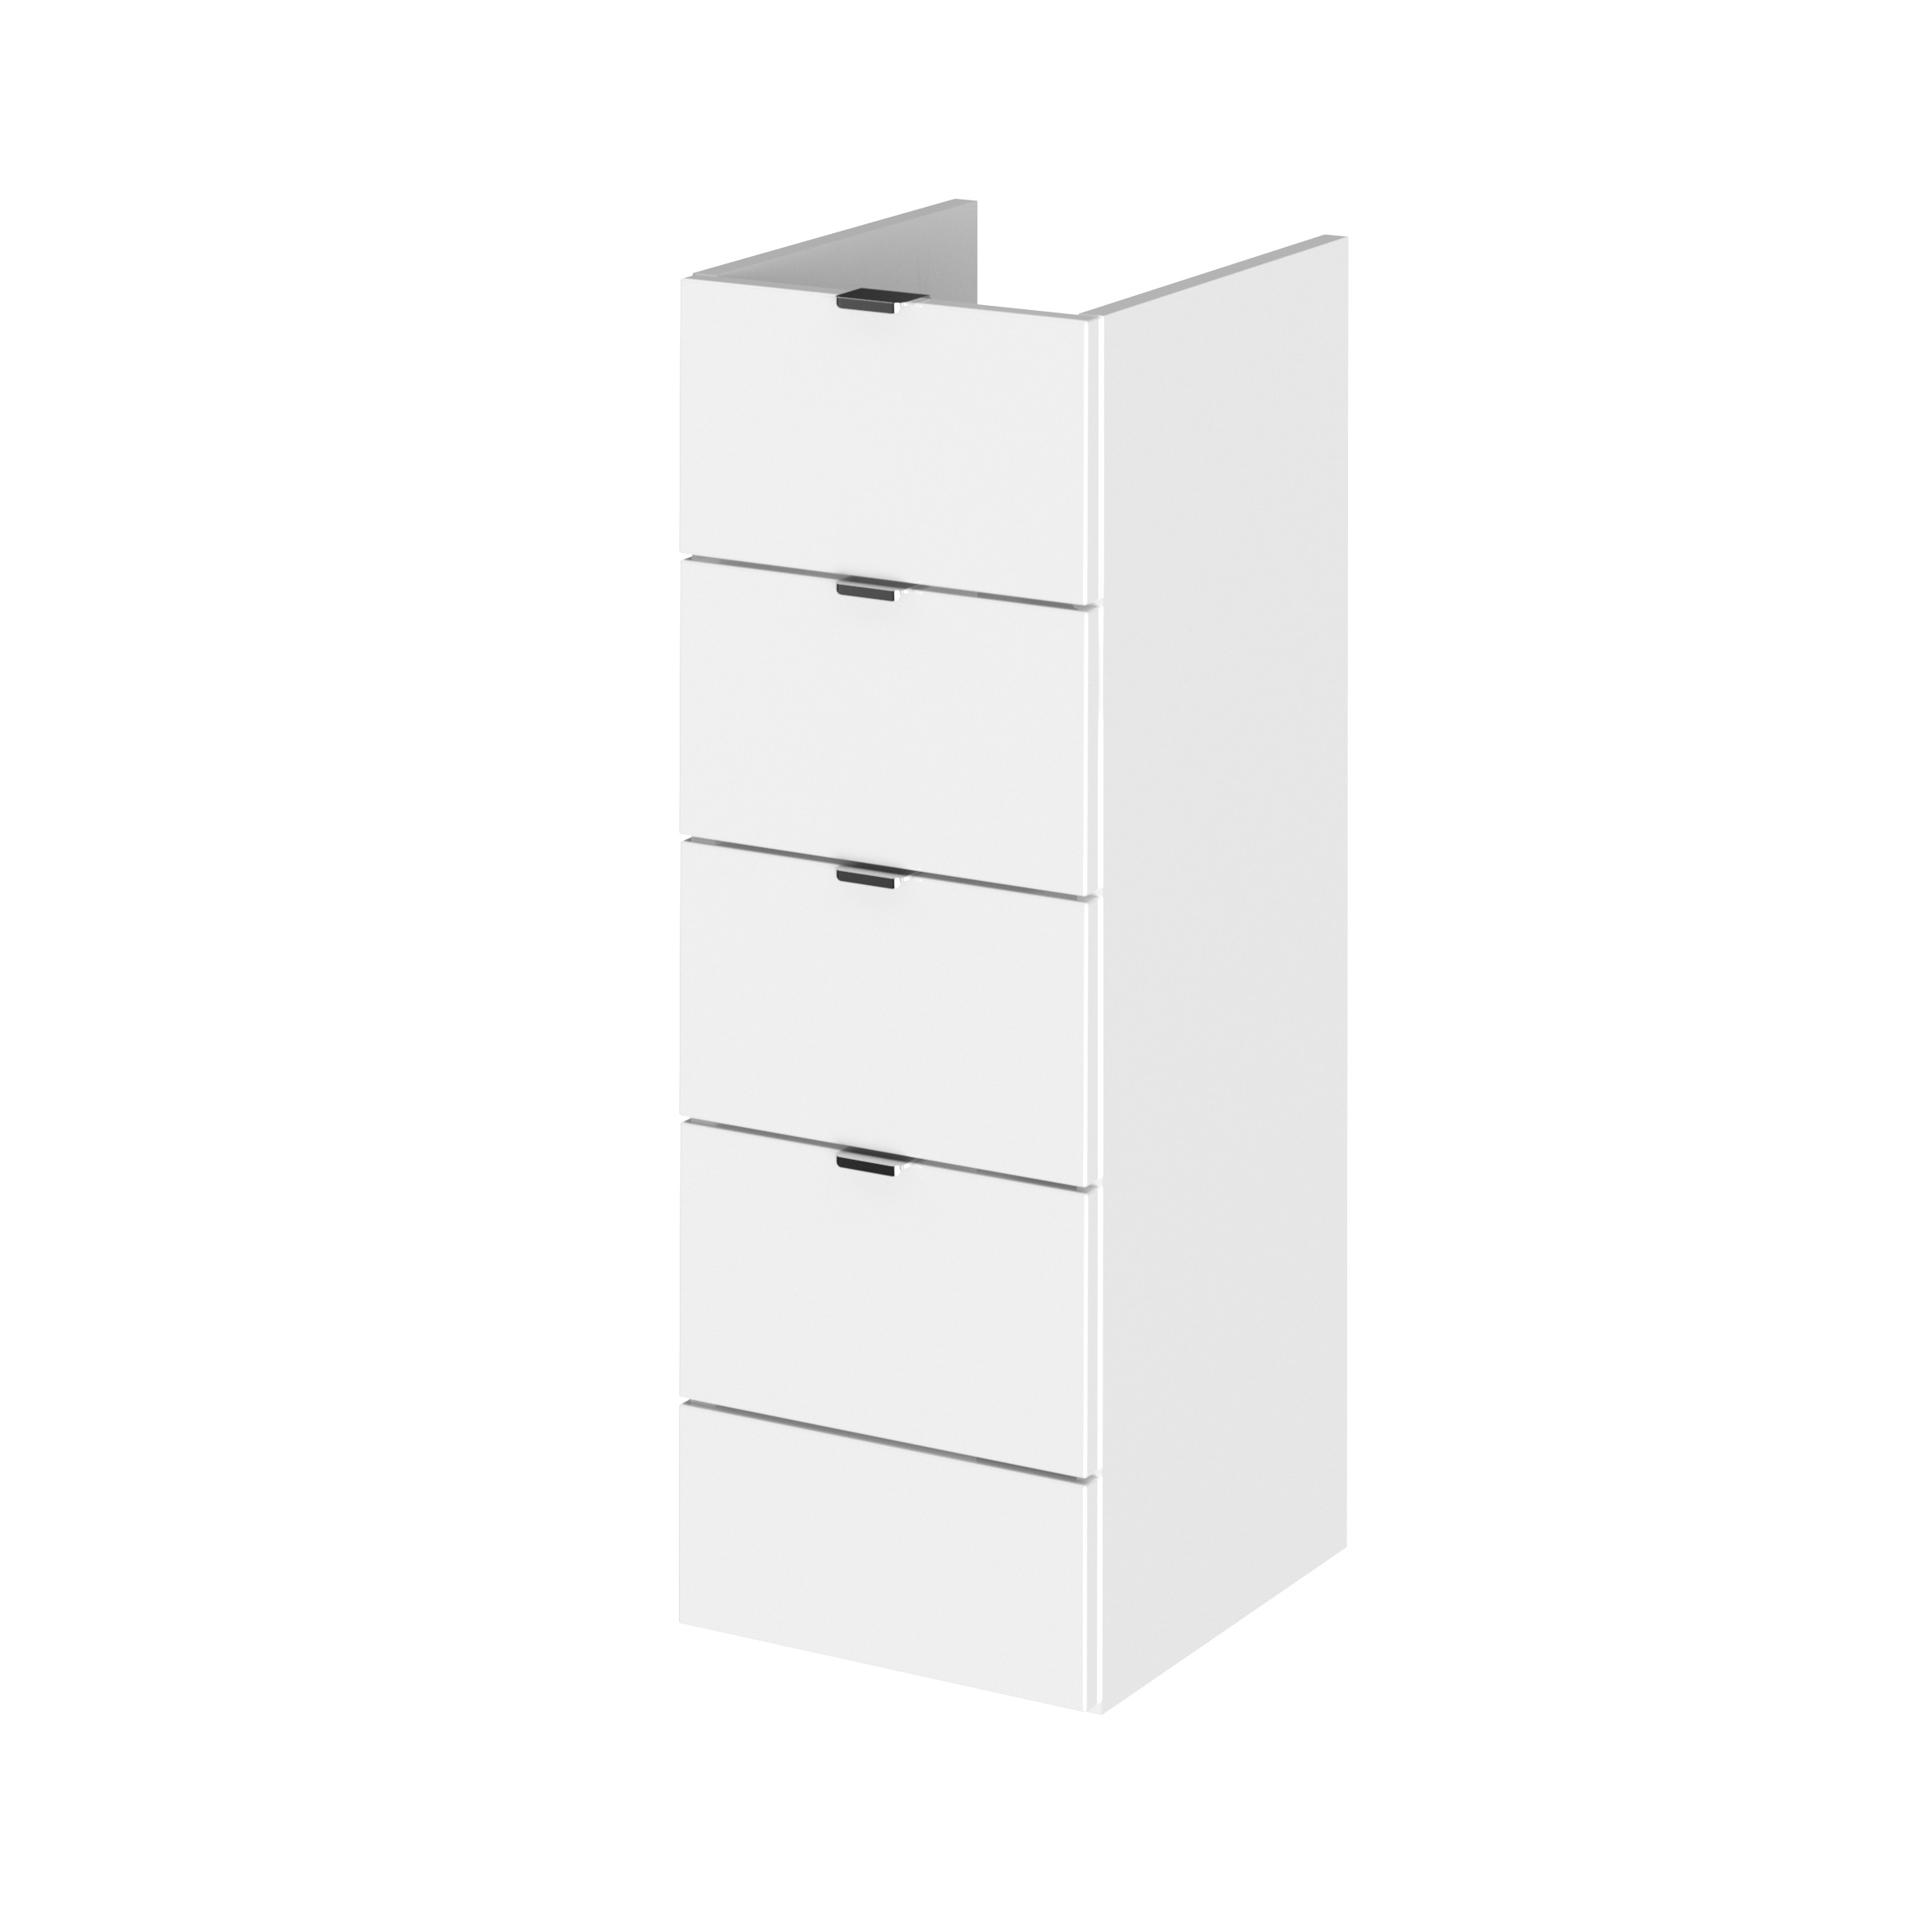 300mm Drawer Unit - White - Hudson Reed